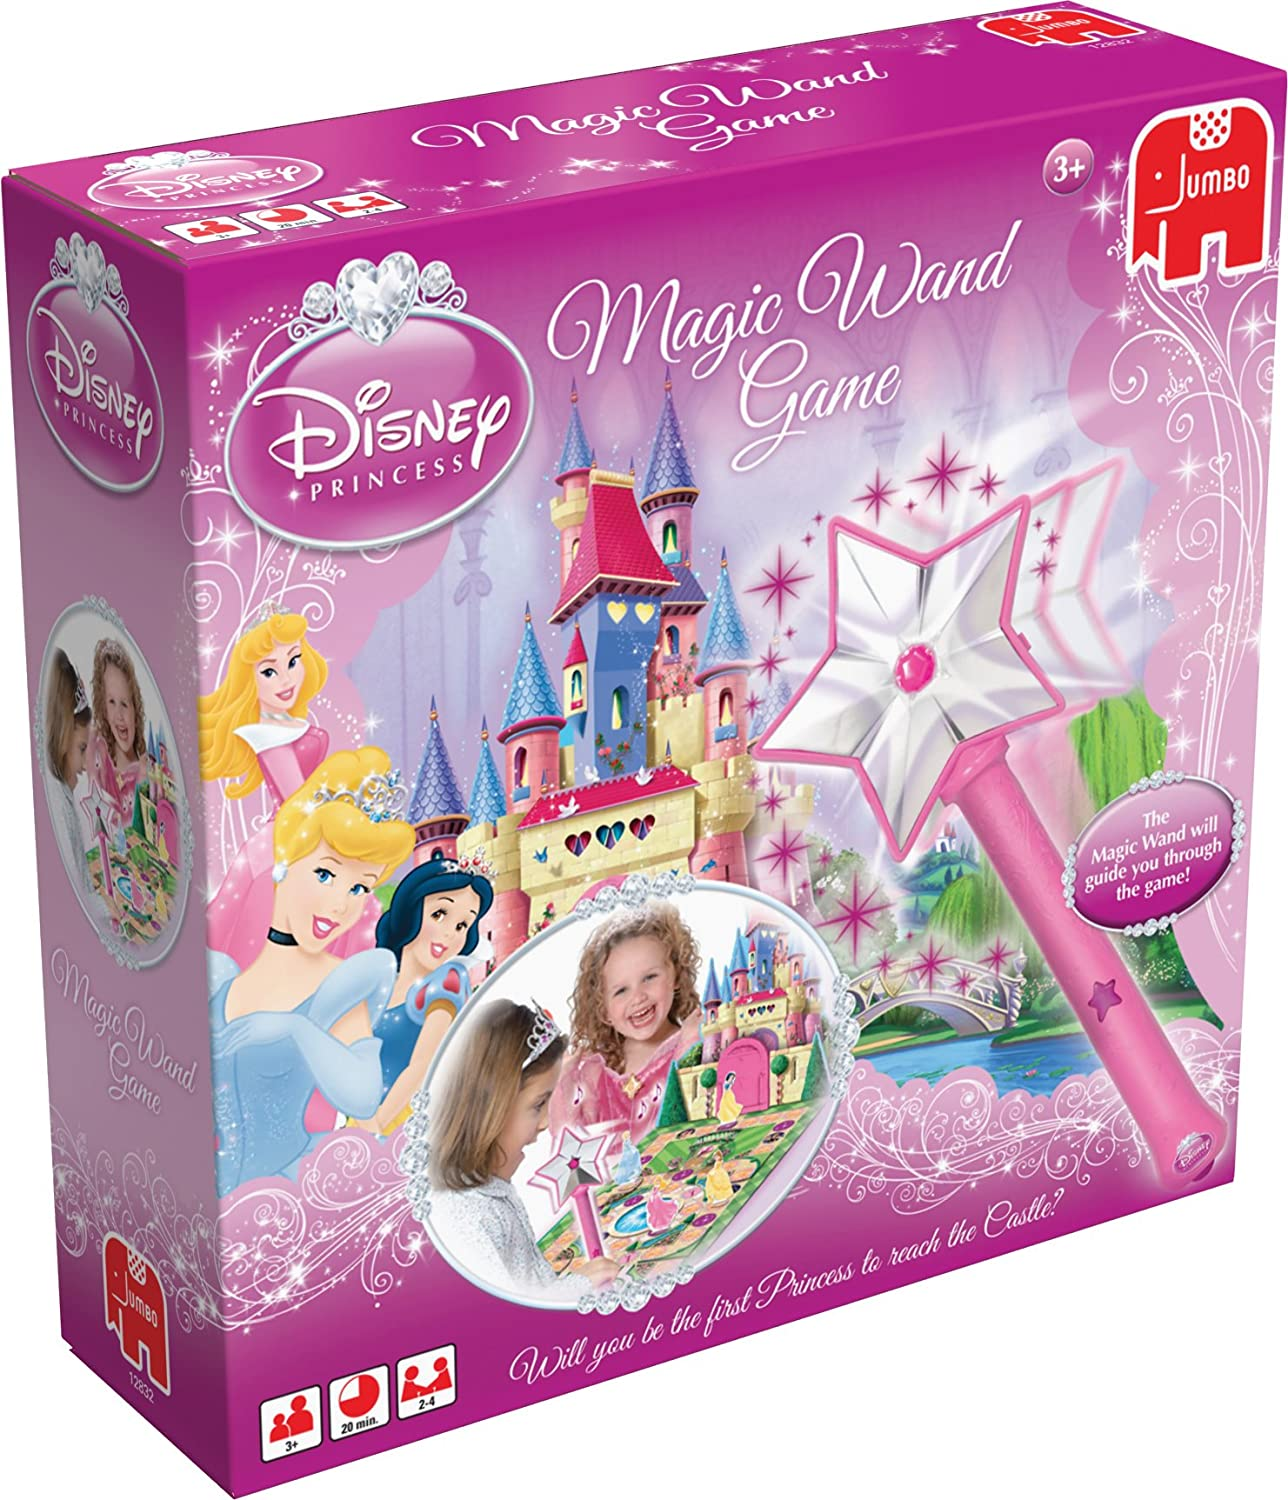 Disney Princess Magic Wand Game Amazon Toys & Games